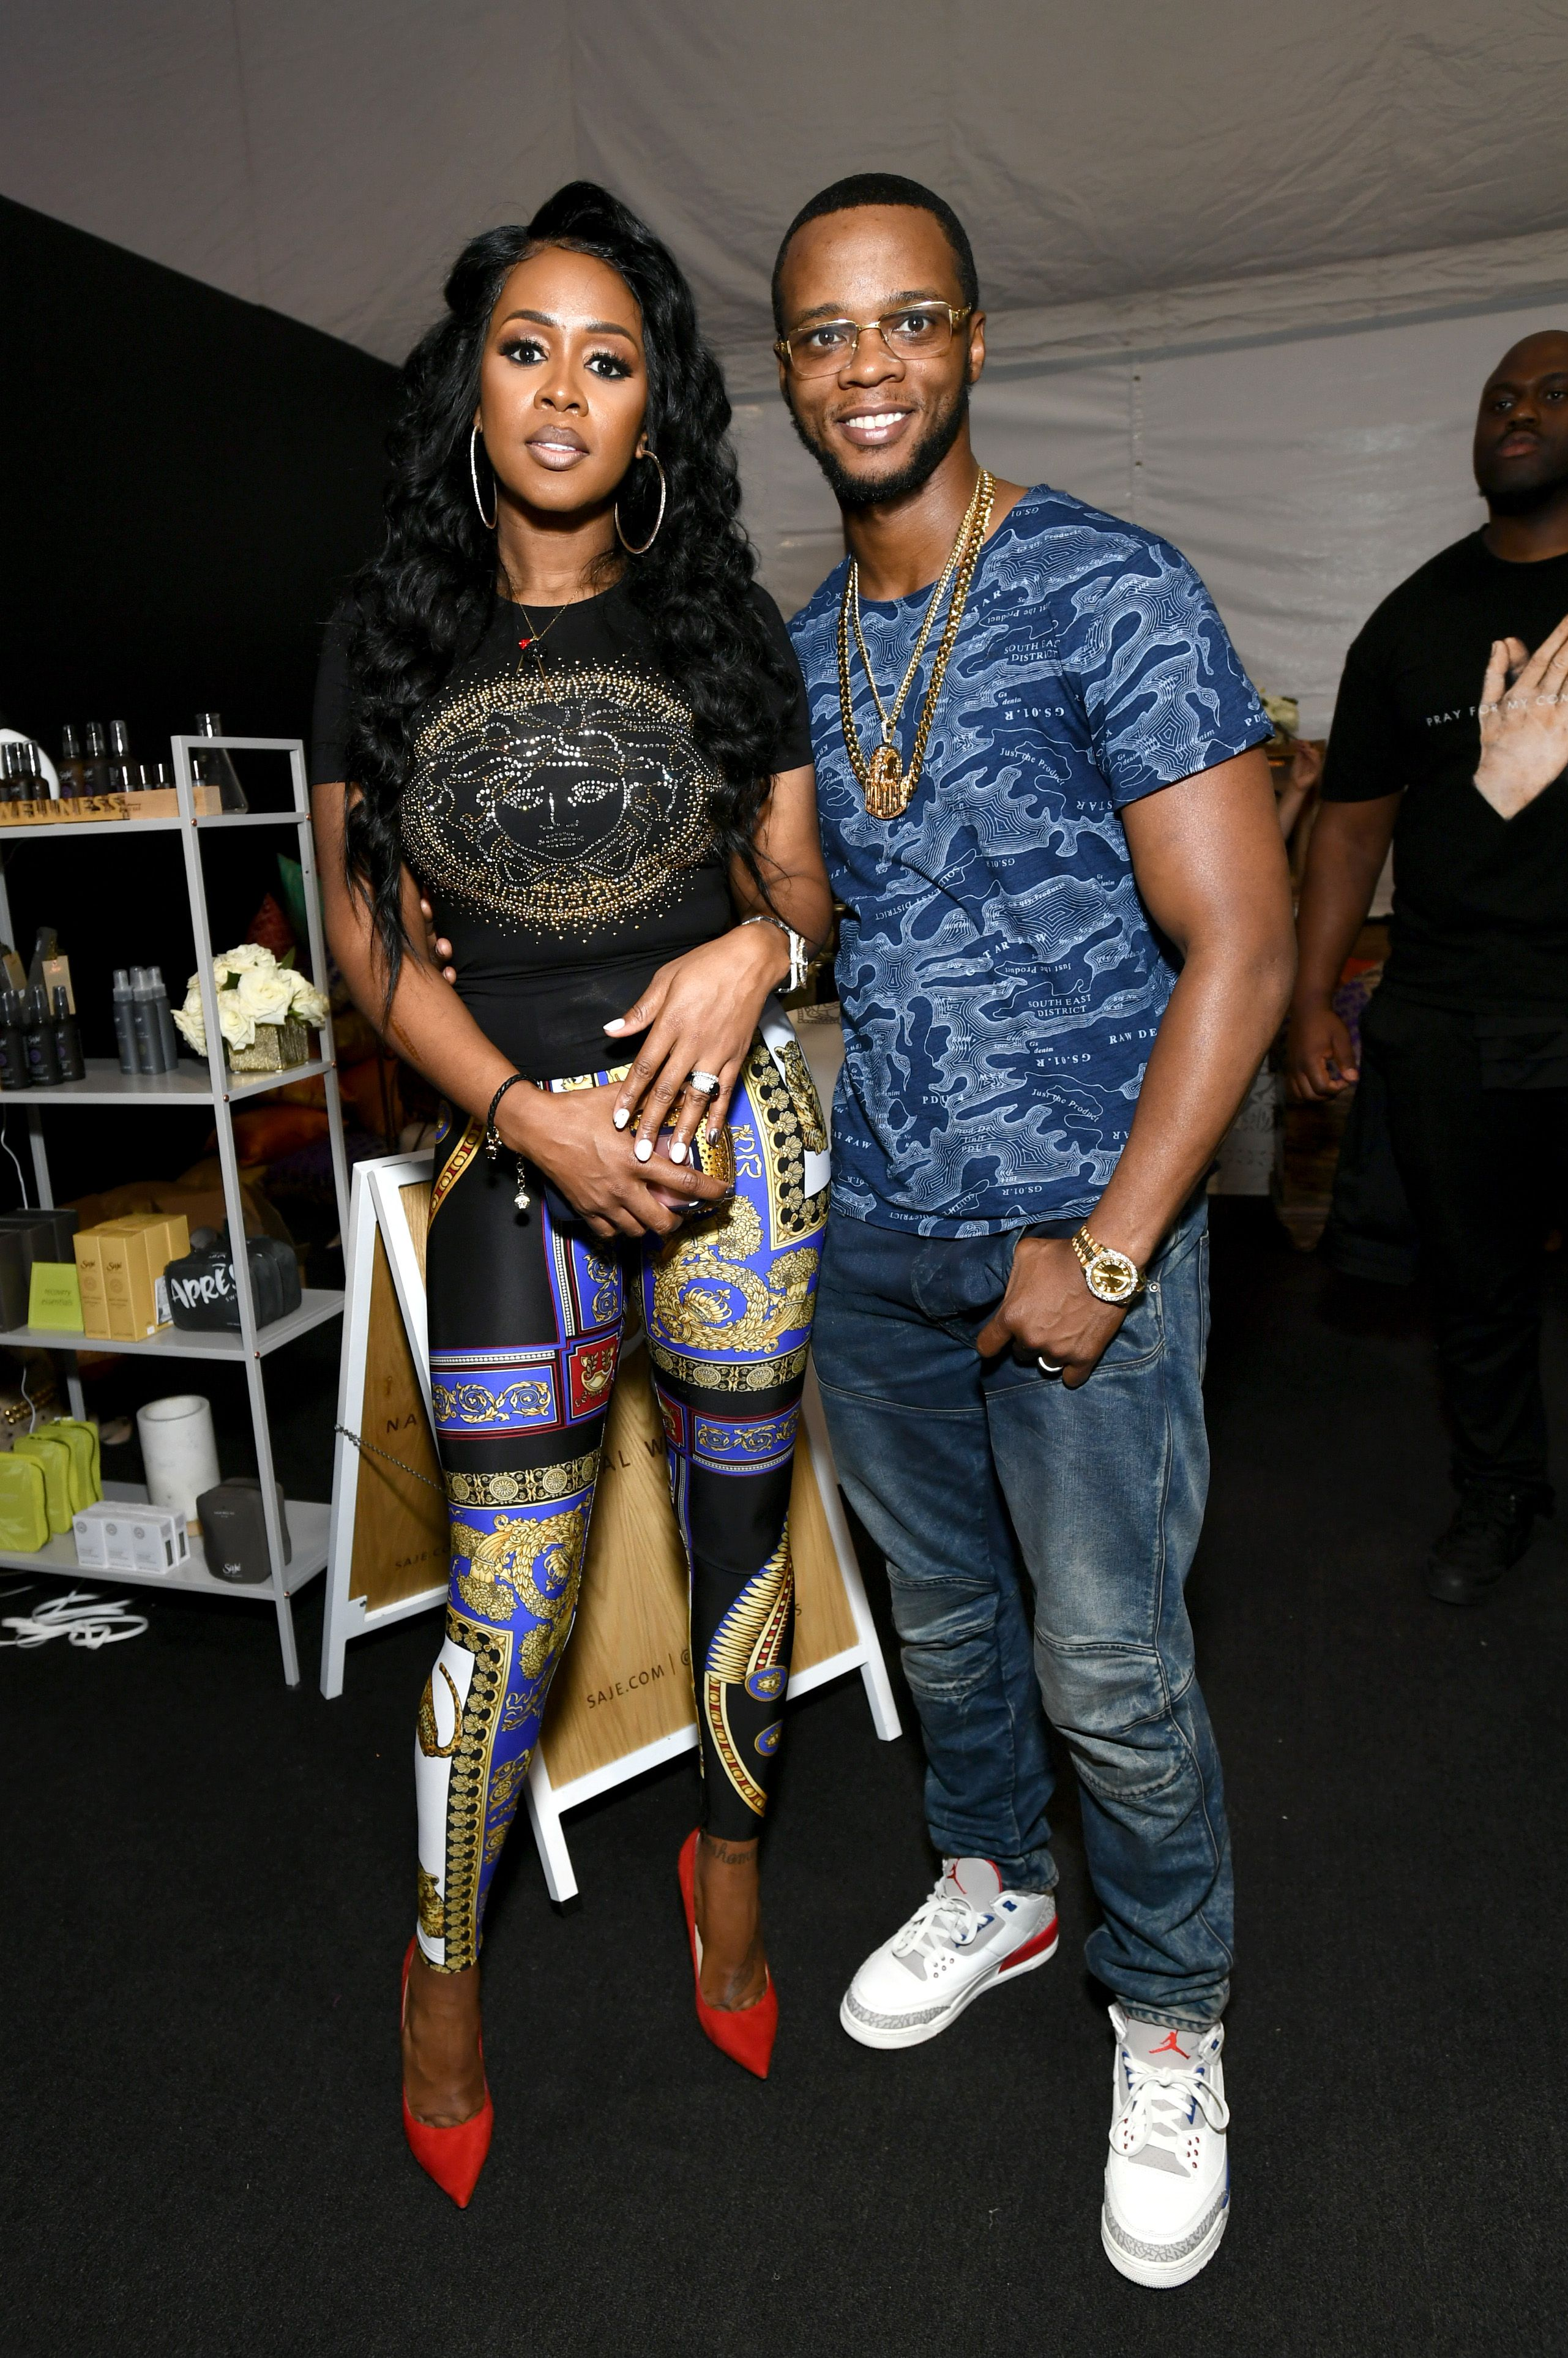 Papoose and rapper Remy Ma at the BET Awards gift lounge on June 22, 2018 in Los Angeles. | Photo: Getty Images